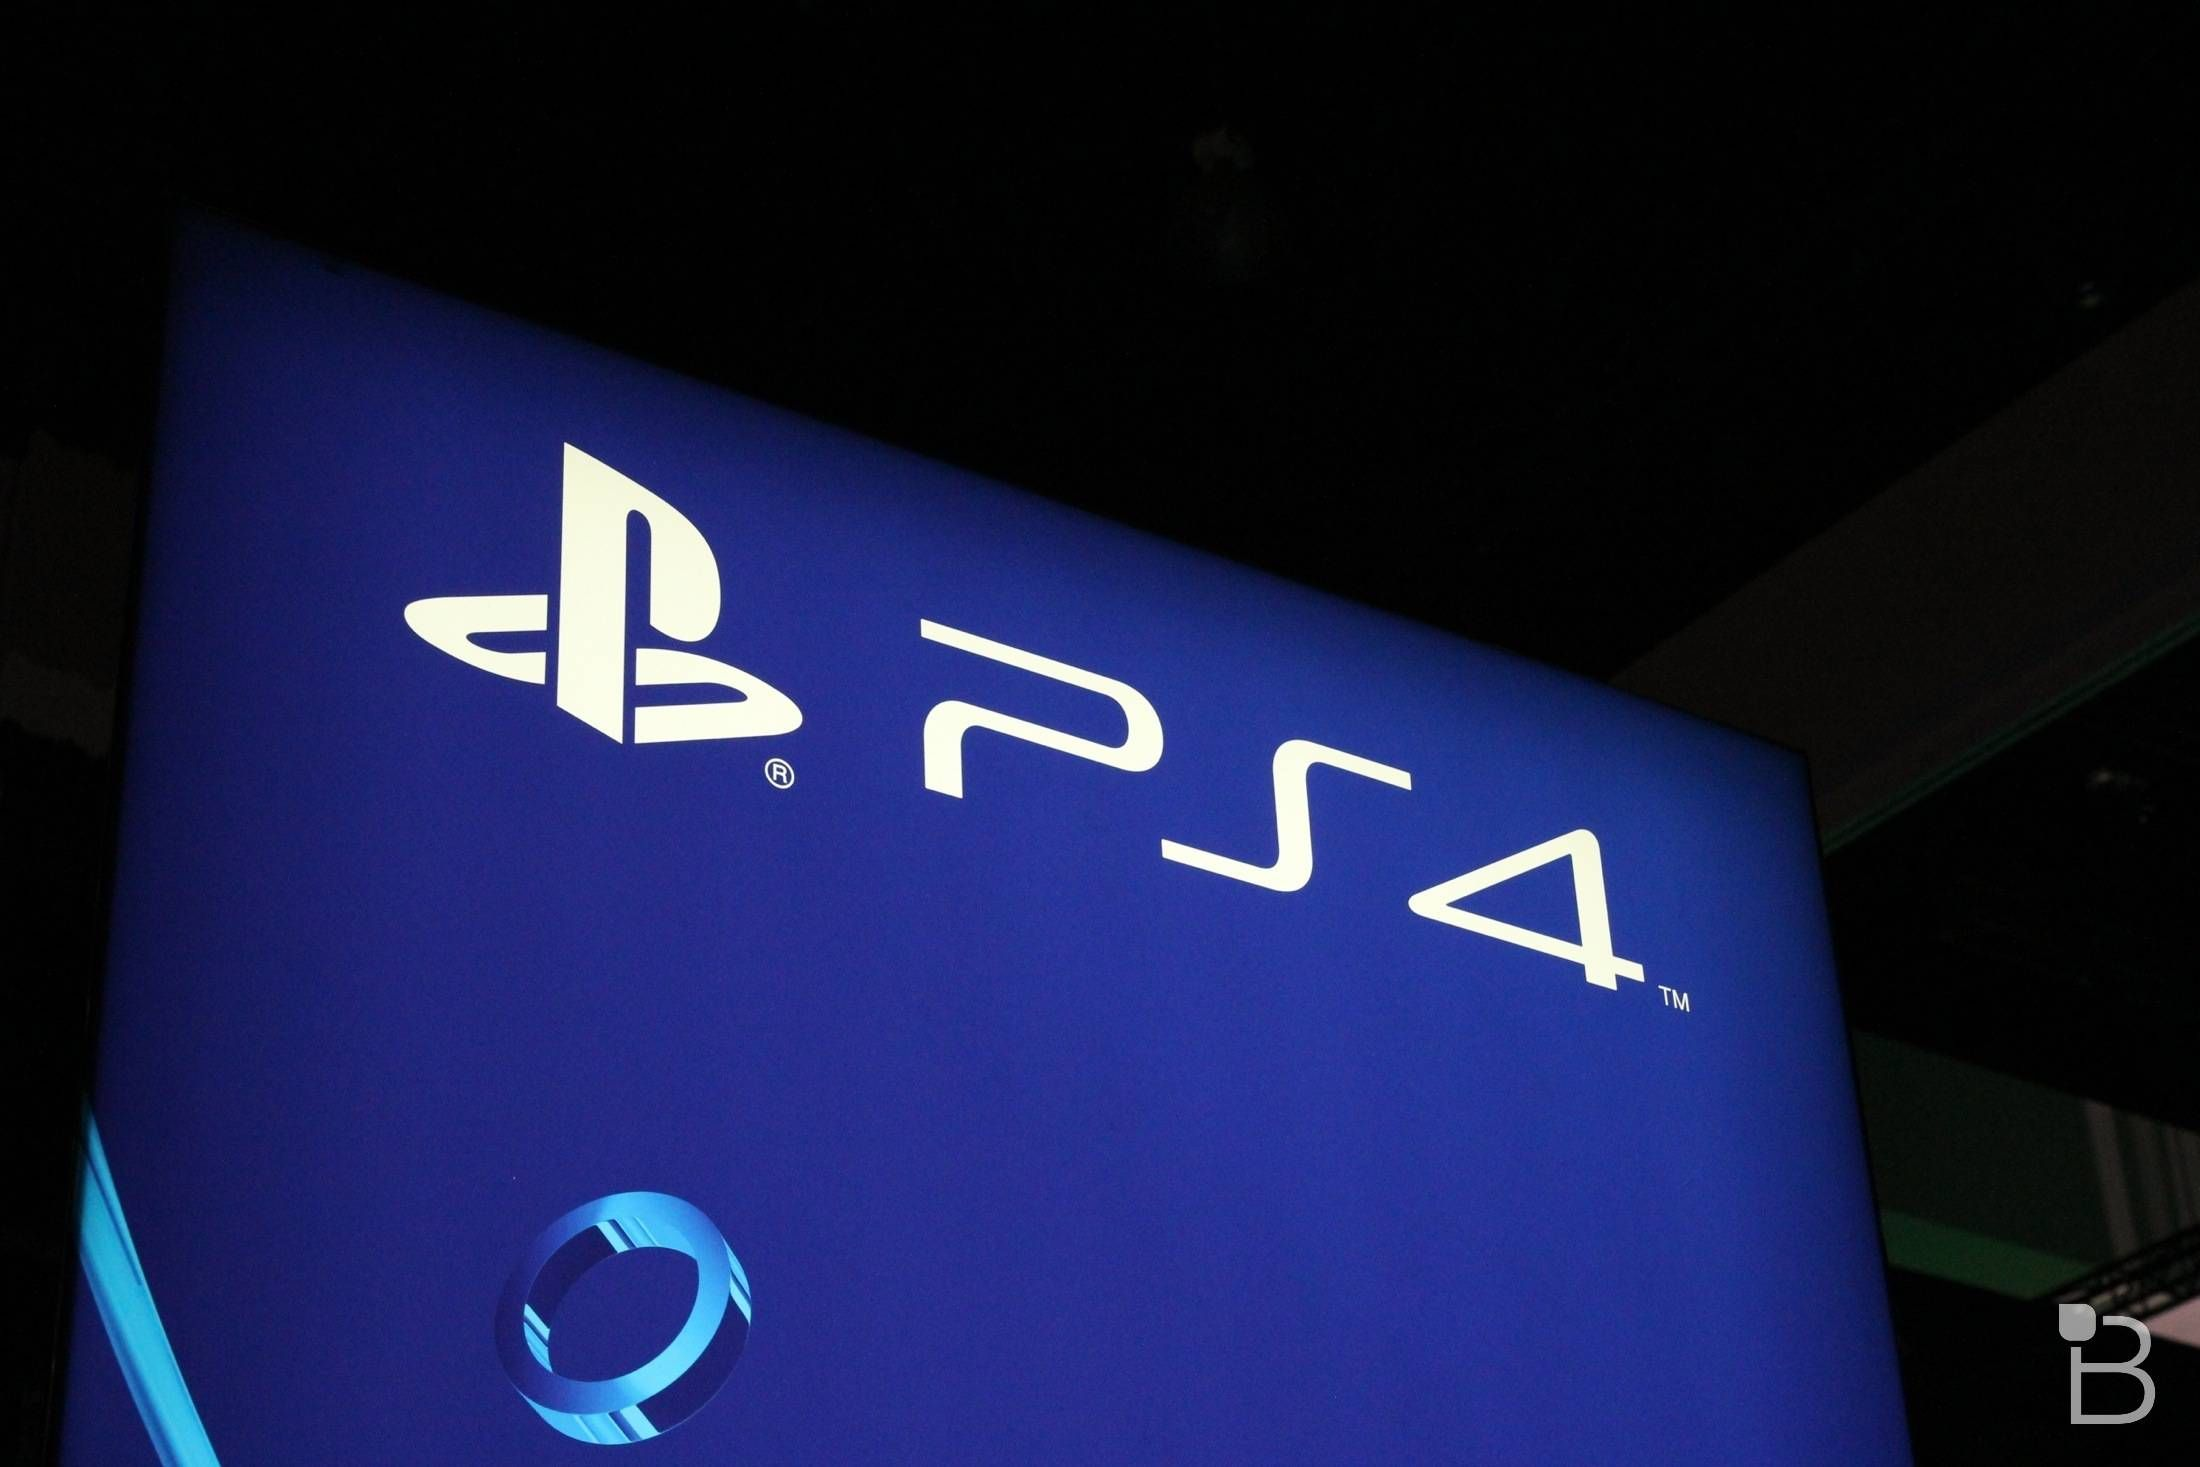 Sony's spilling the beans on 3 games before E3 (and some